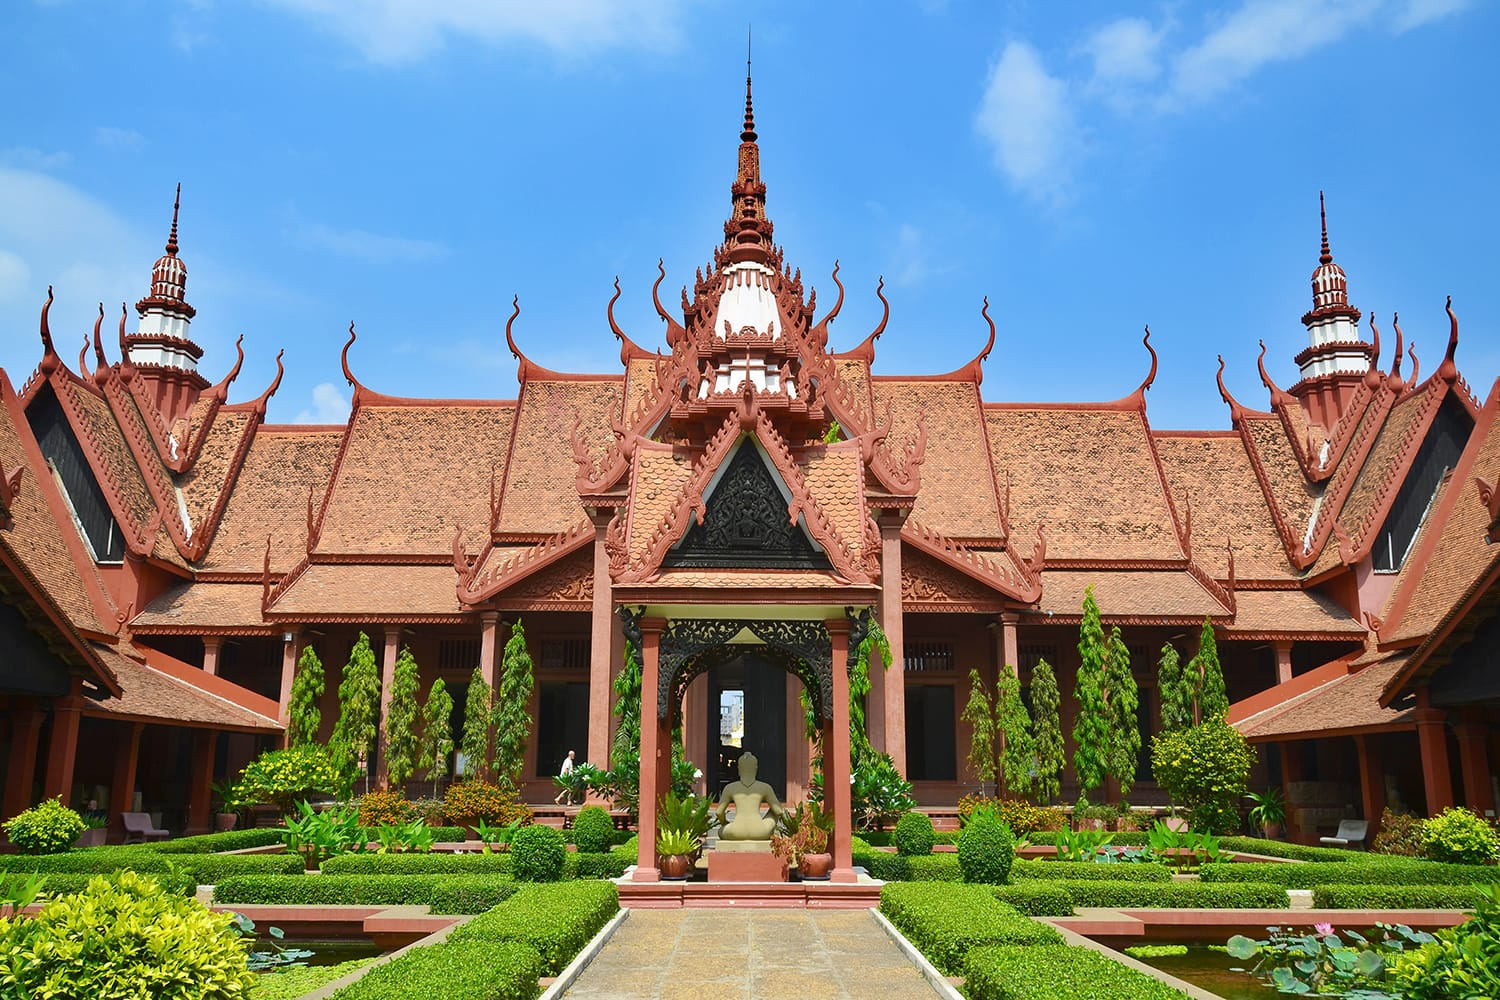 The National Museum of Cambodia (Sala Rachana) in Phnom Penh is Cambodia's largest museum of cultural history and is the country's leading historical and archaeological museum.